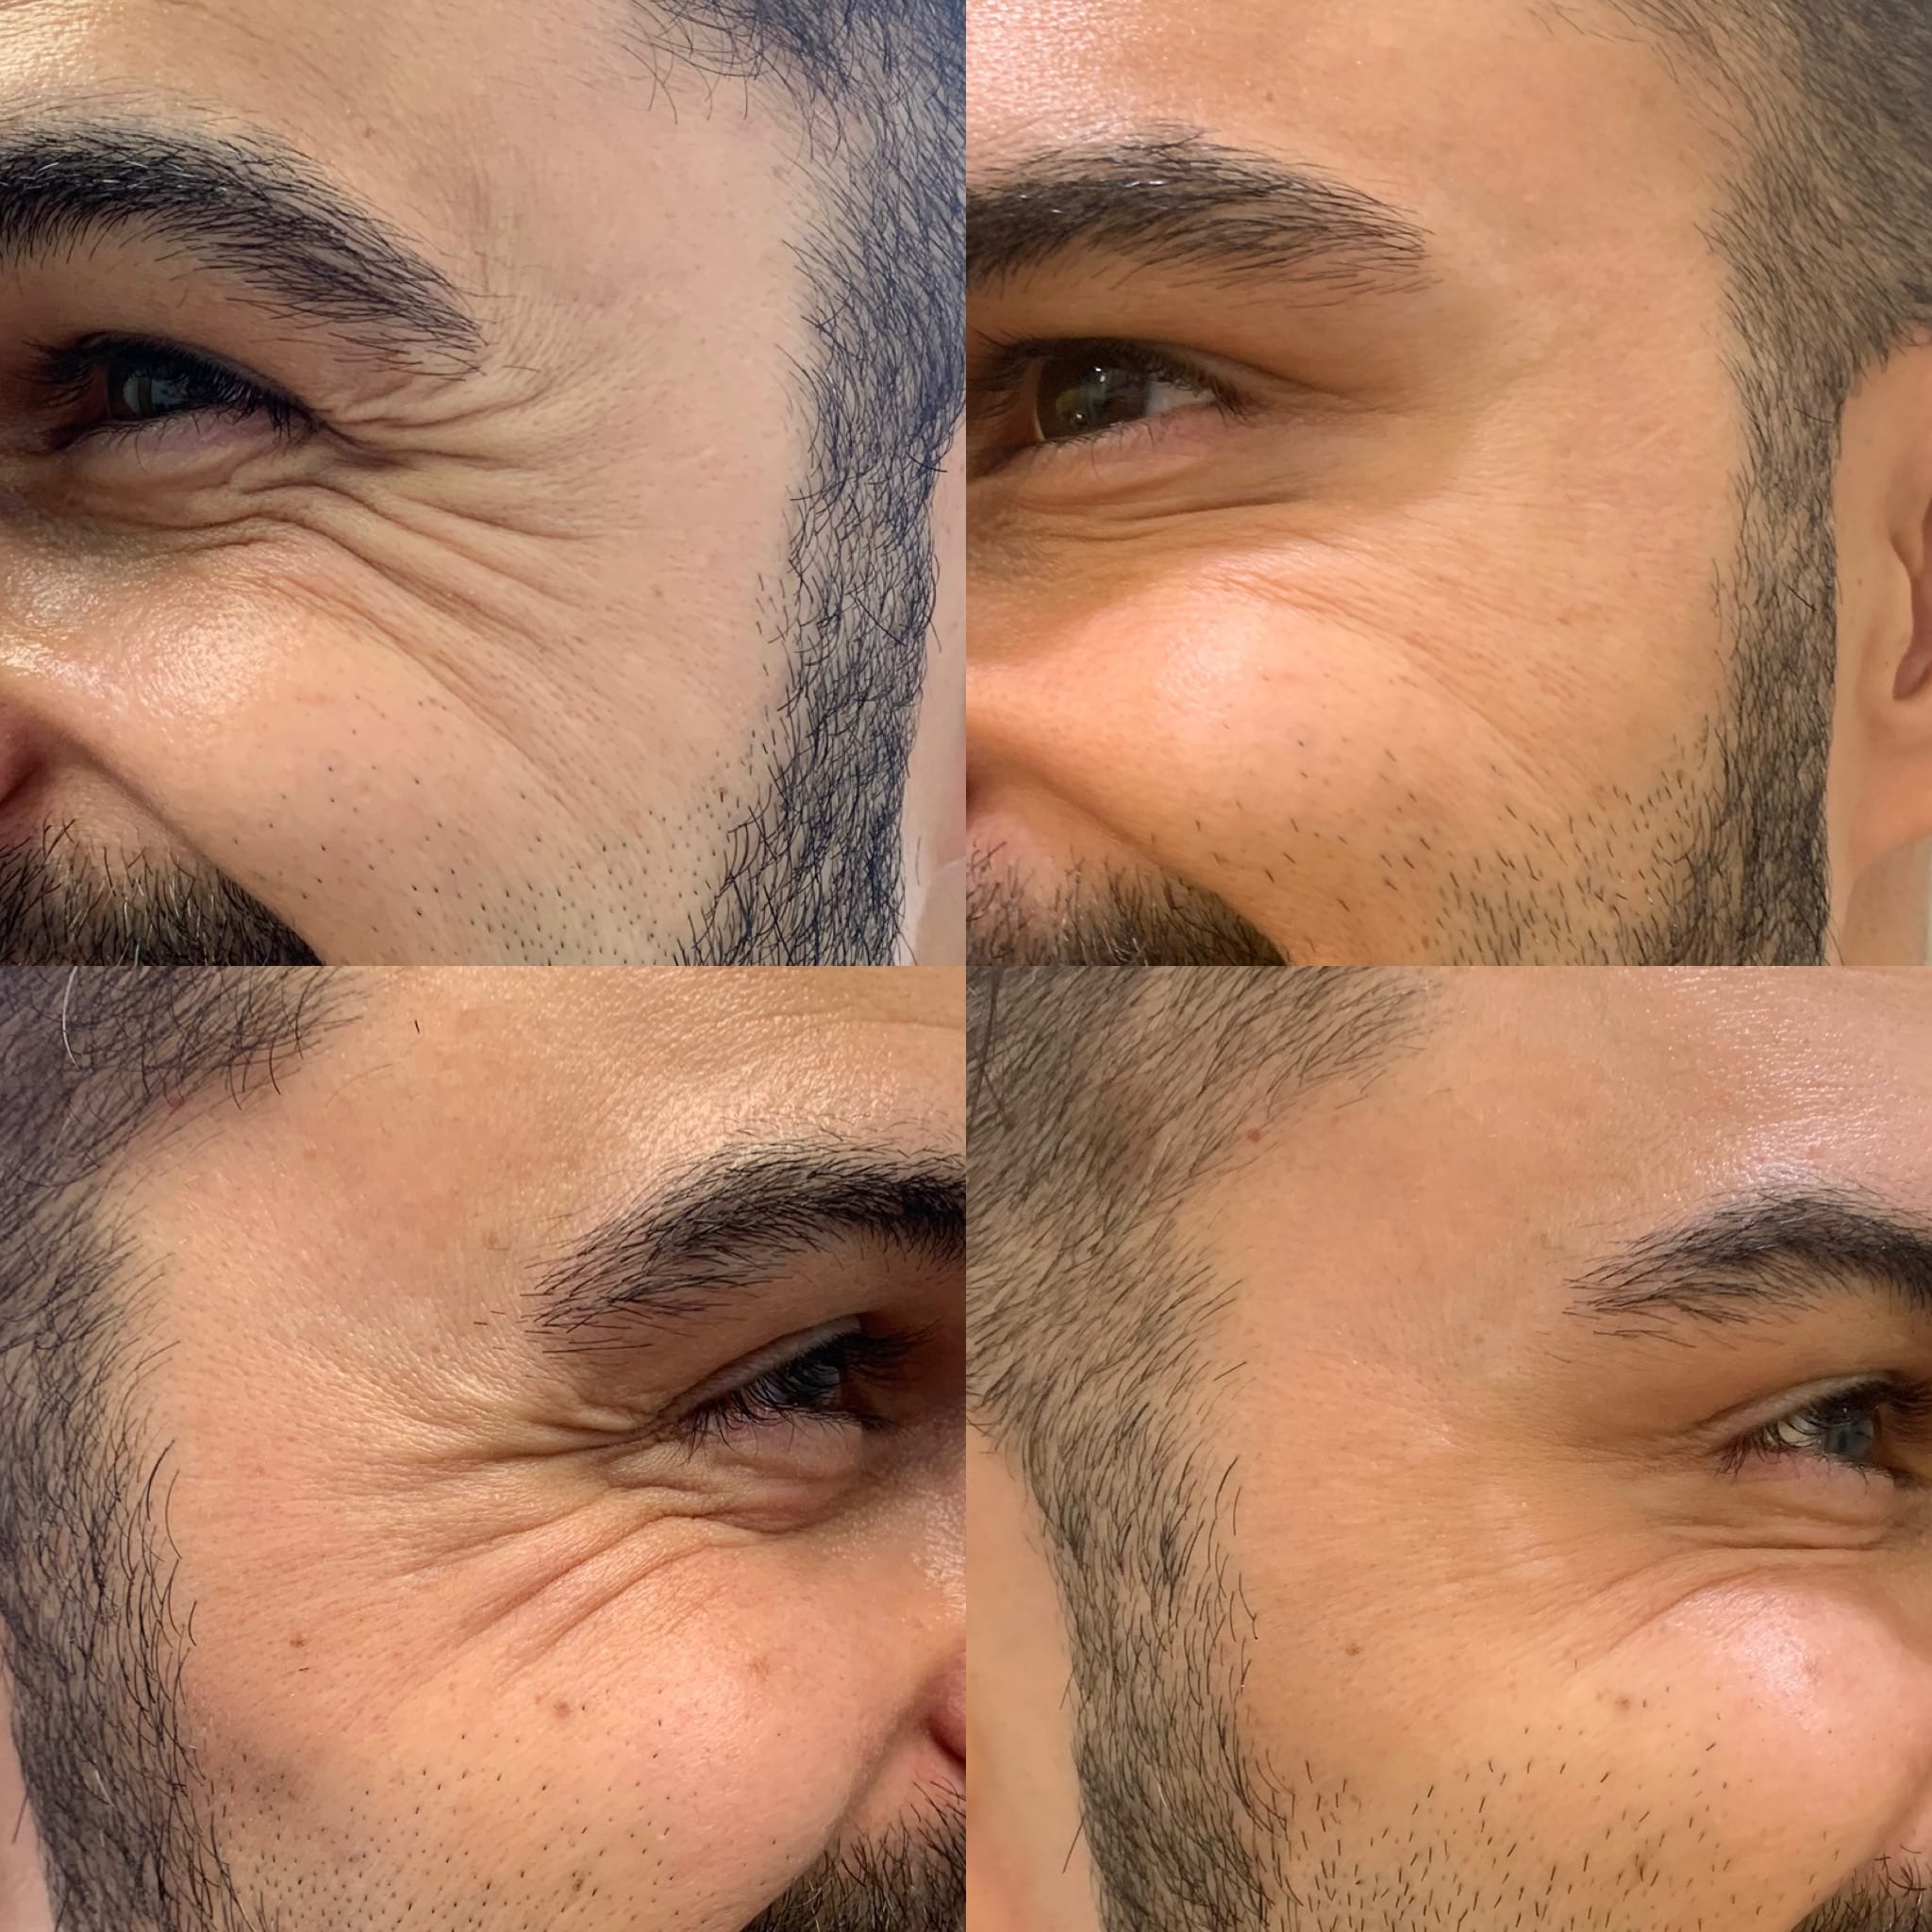 32 y/o East Indian M 1 week after receiving 24 units of botox to crow's feet and brow lift.